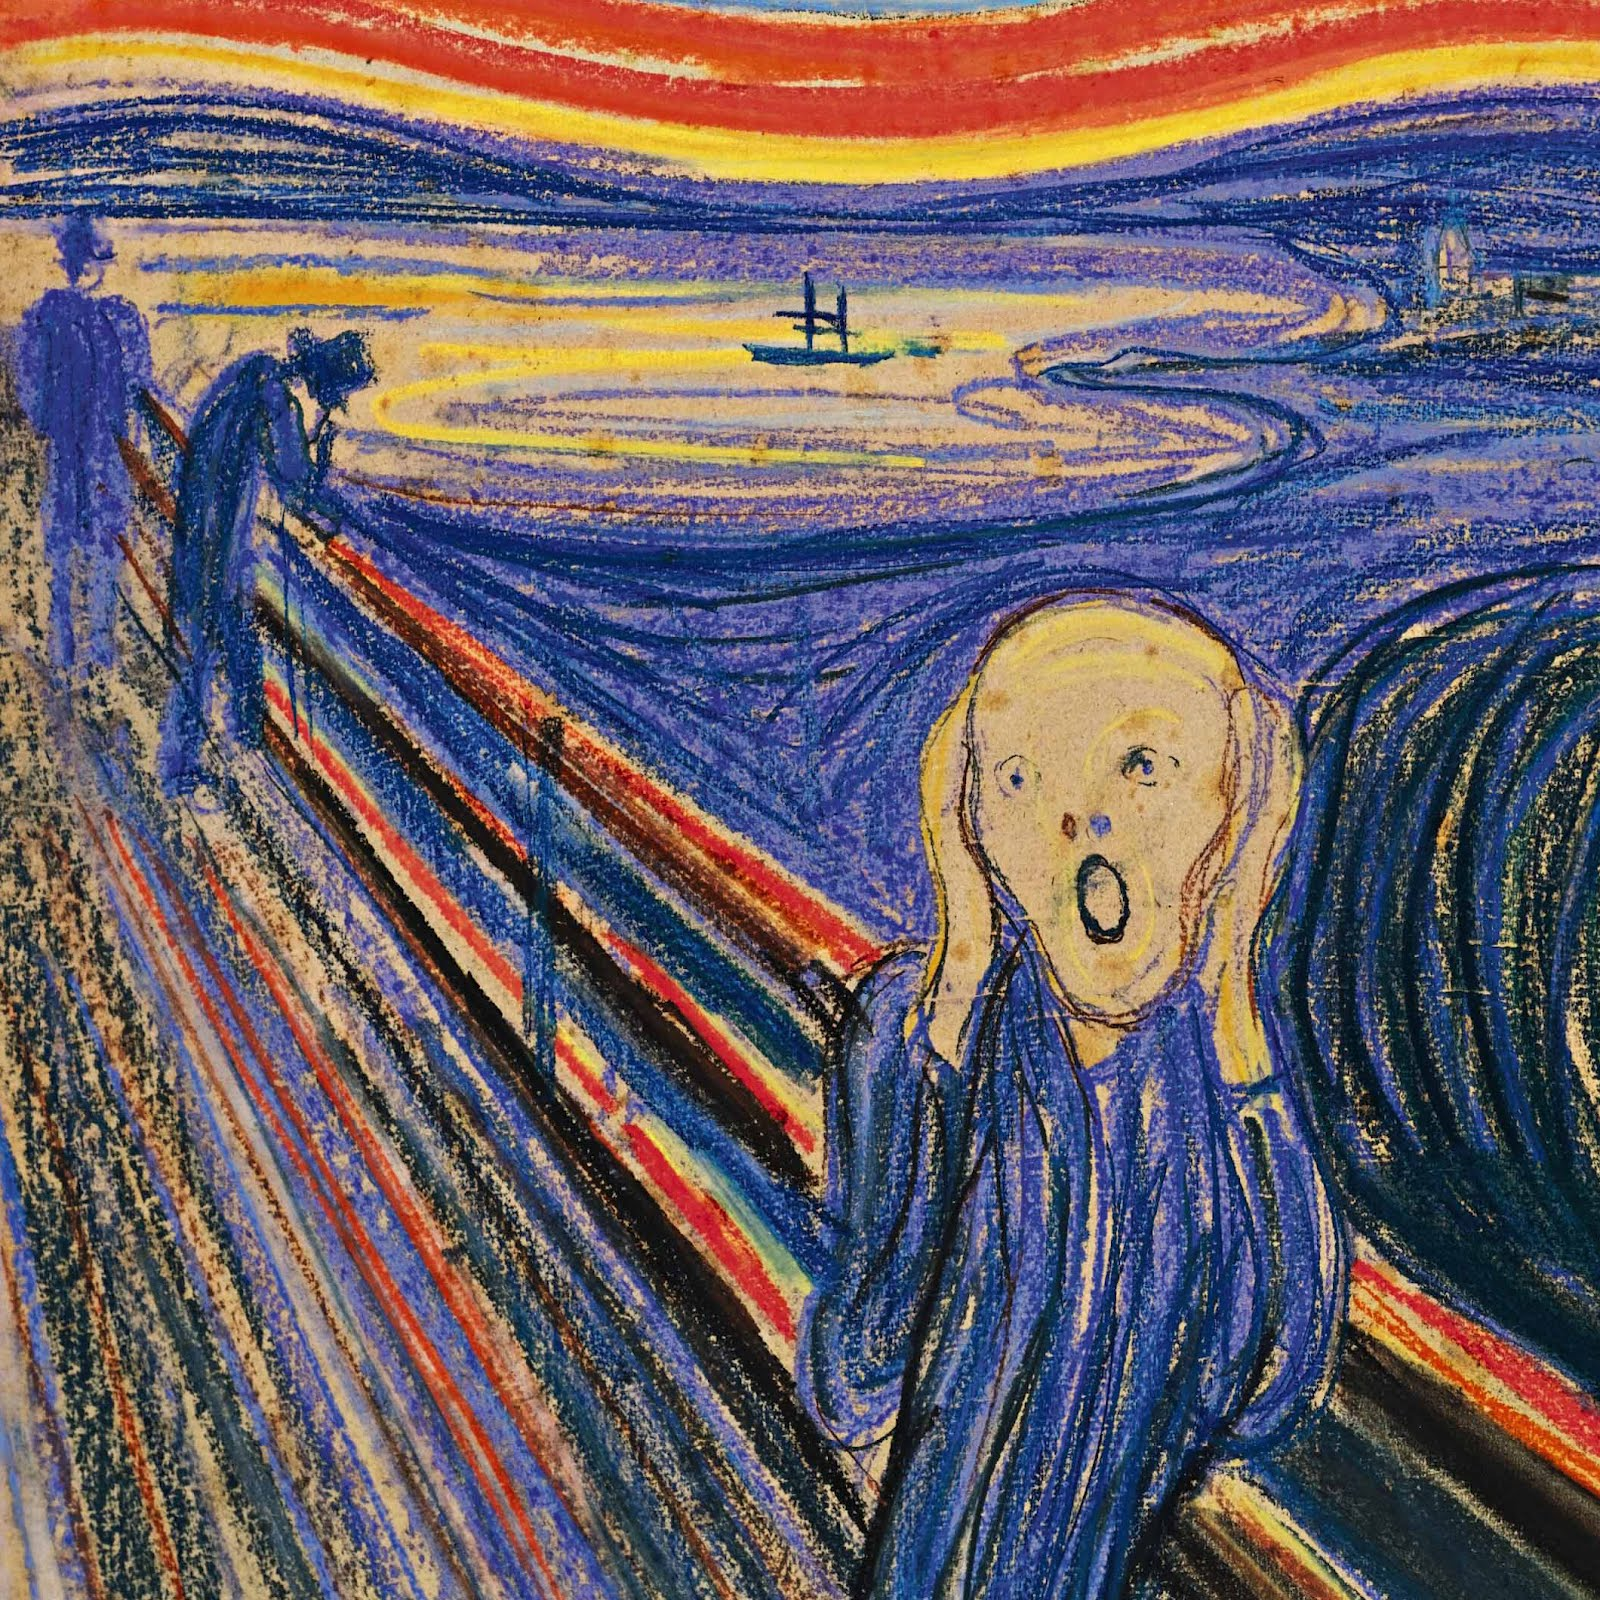 edvard munch the scream The scream by edvard munch looking like a scene out of a nightmare, edvard munch's painting the scream is one of the world's most recognizable expressionist.